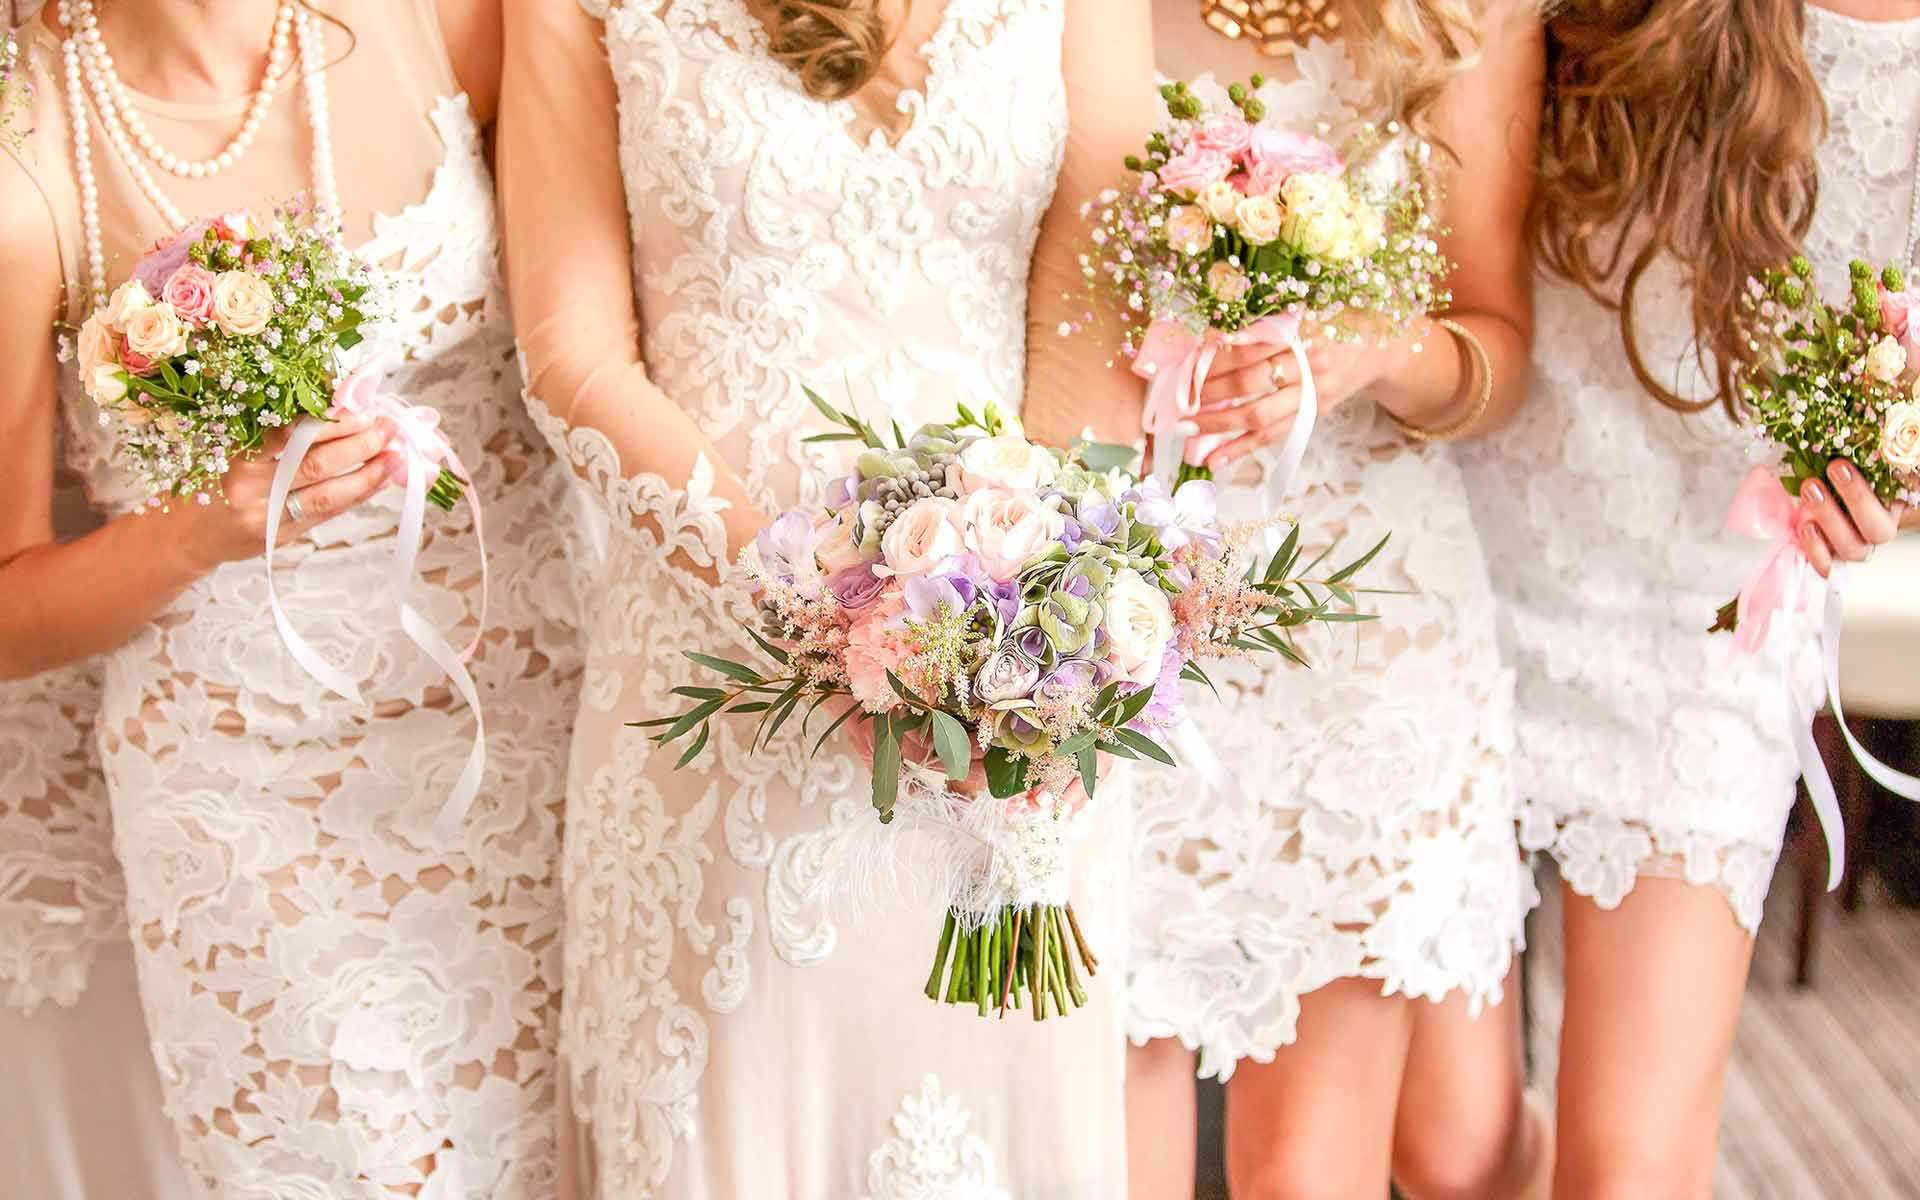 Gorgeous-Bridesmaid-Wedding-Bouquets-by-Diamond-Events-Wedding-Event-planning-services